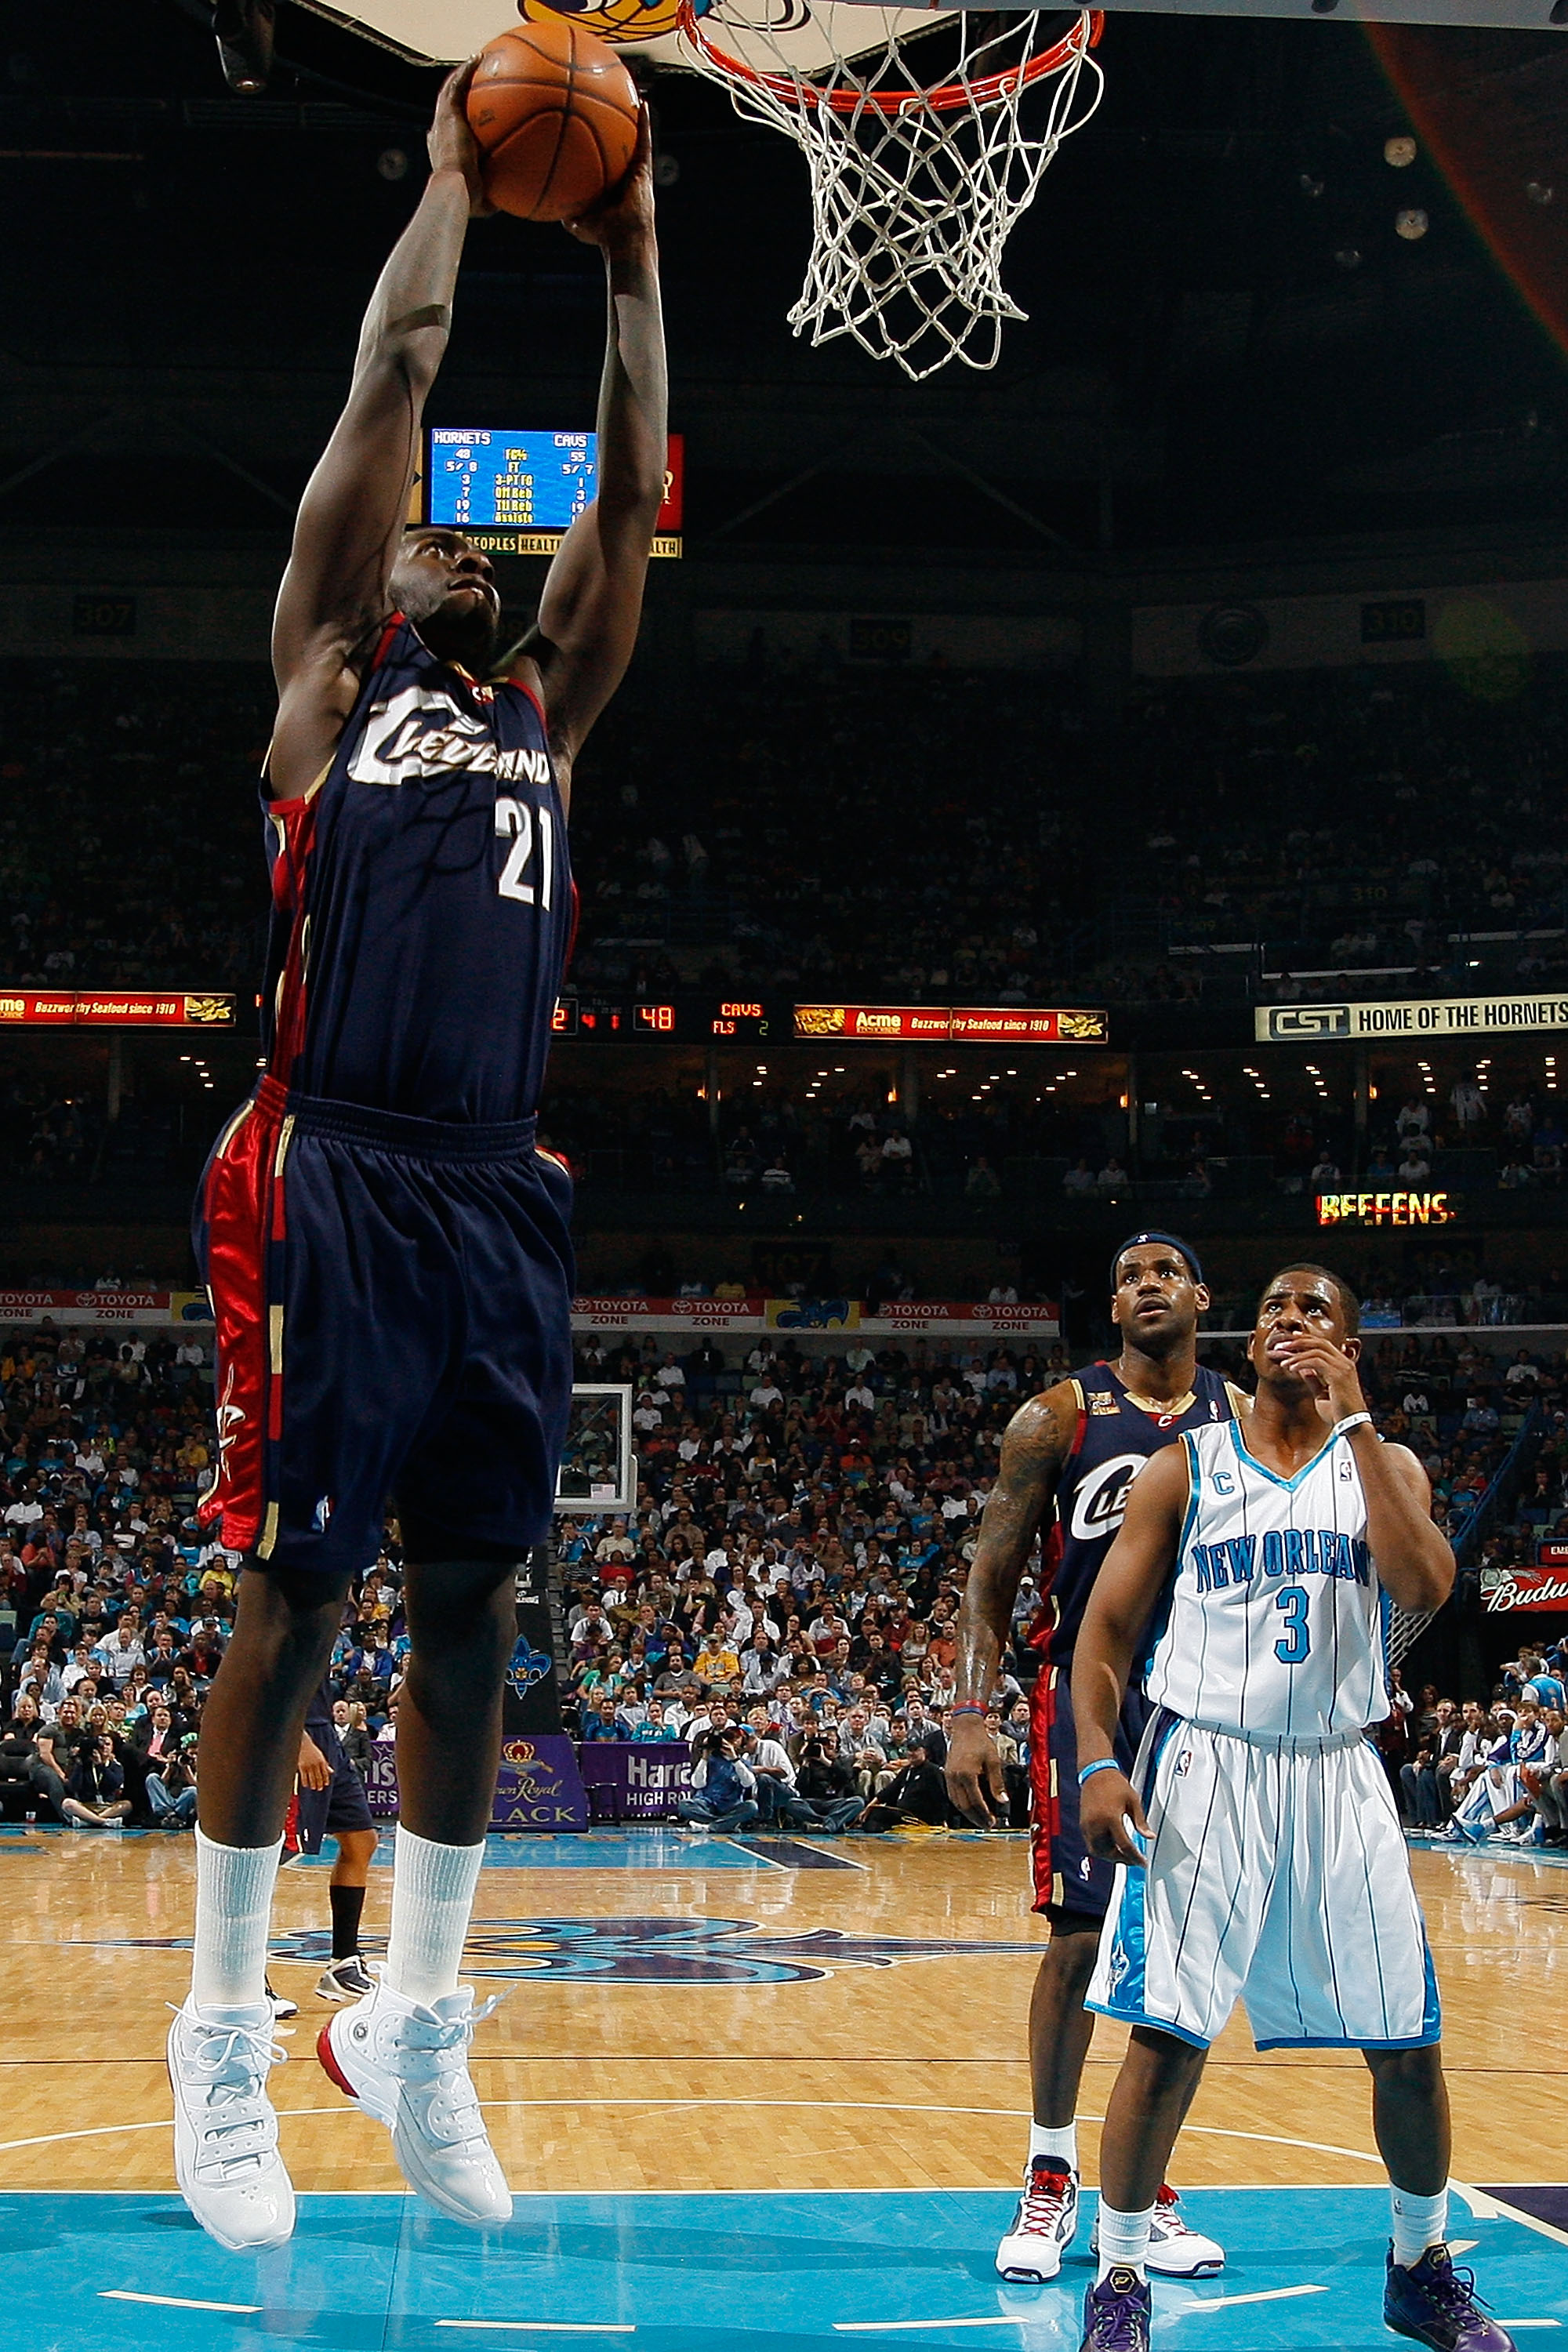 NEW ORLEANS - MARCH 24:  J.J. Hickson #21 of the Cleveland Cavaliers dunks the ball against the New Orleans Hornets at the New Orleans Arena on March 24, 2010 in New Orleans, Louisiana.  The Cavaliers defeated the Hornets 105-92.  NOTE TO USER: User expre